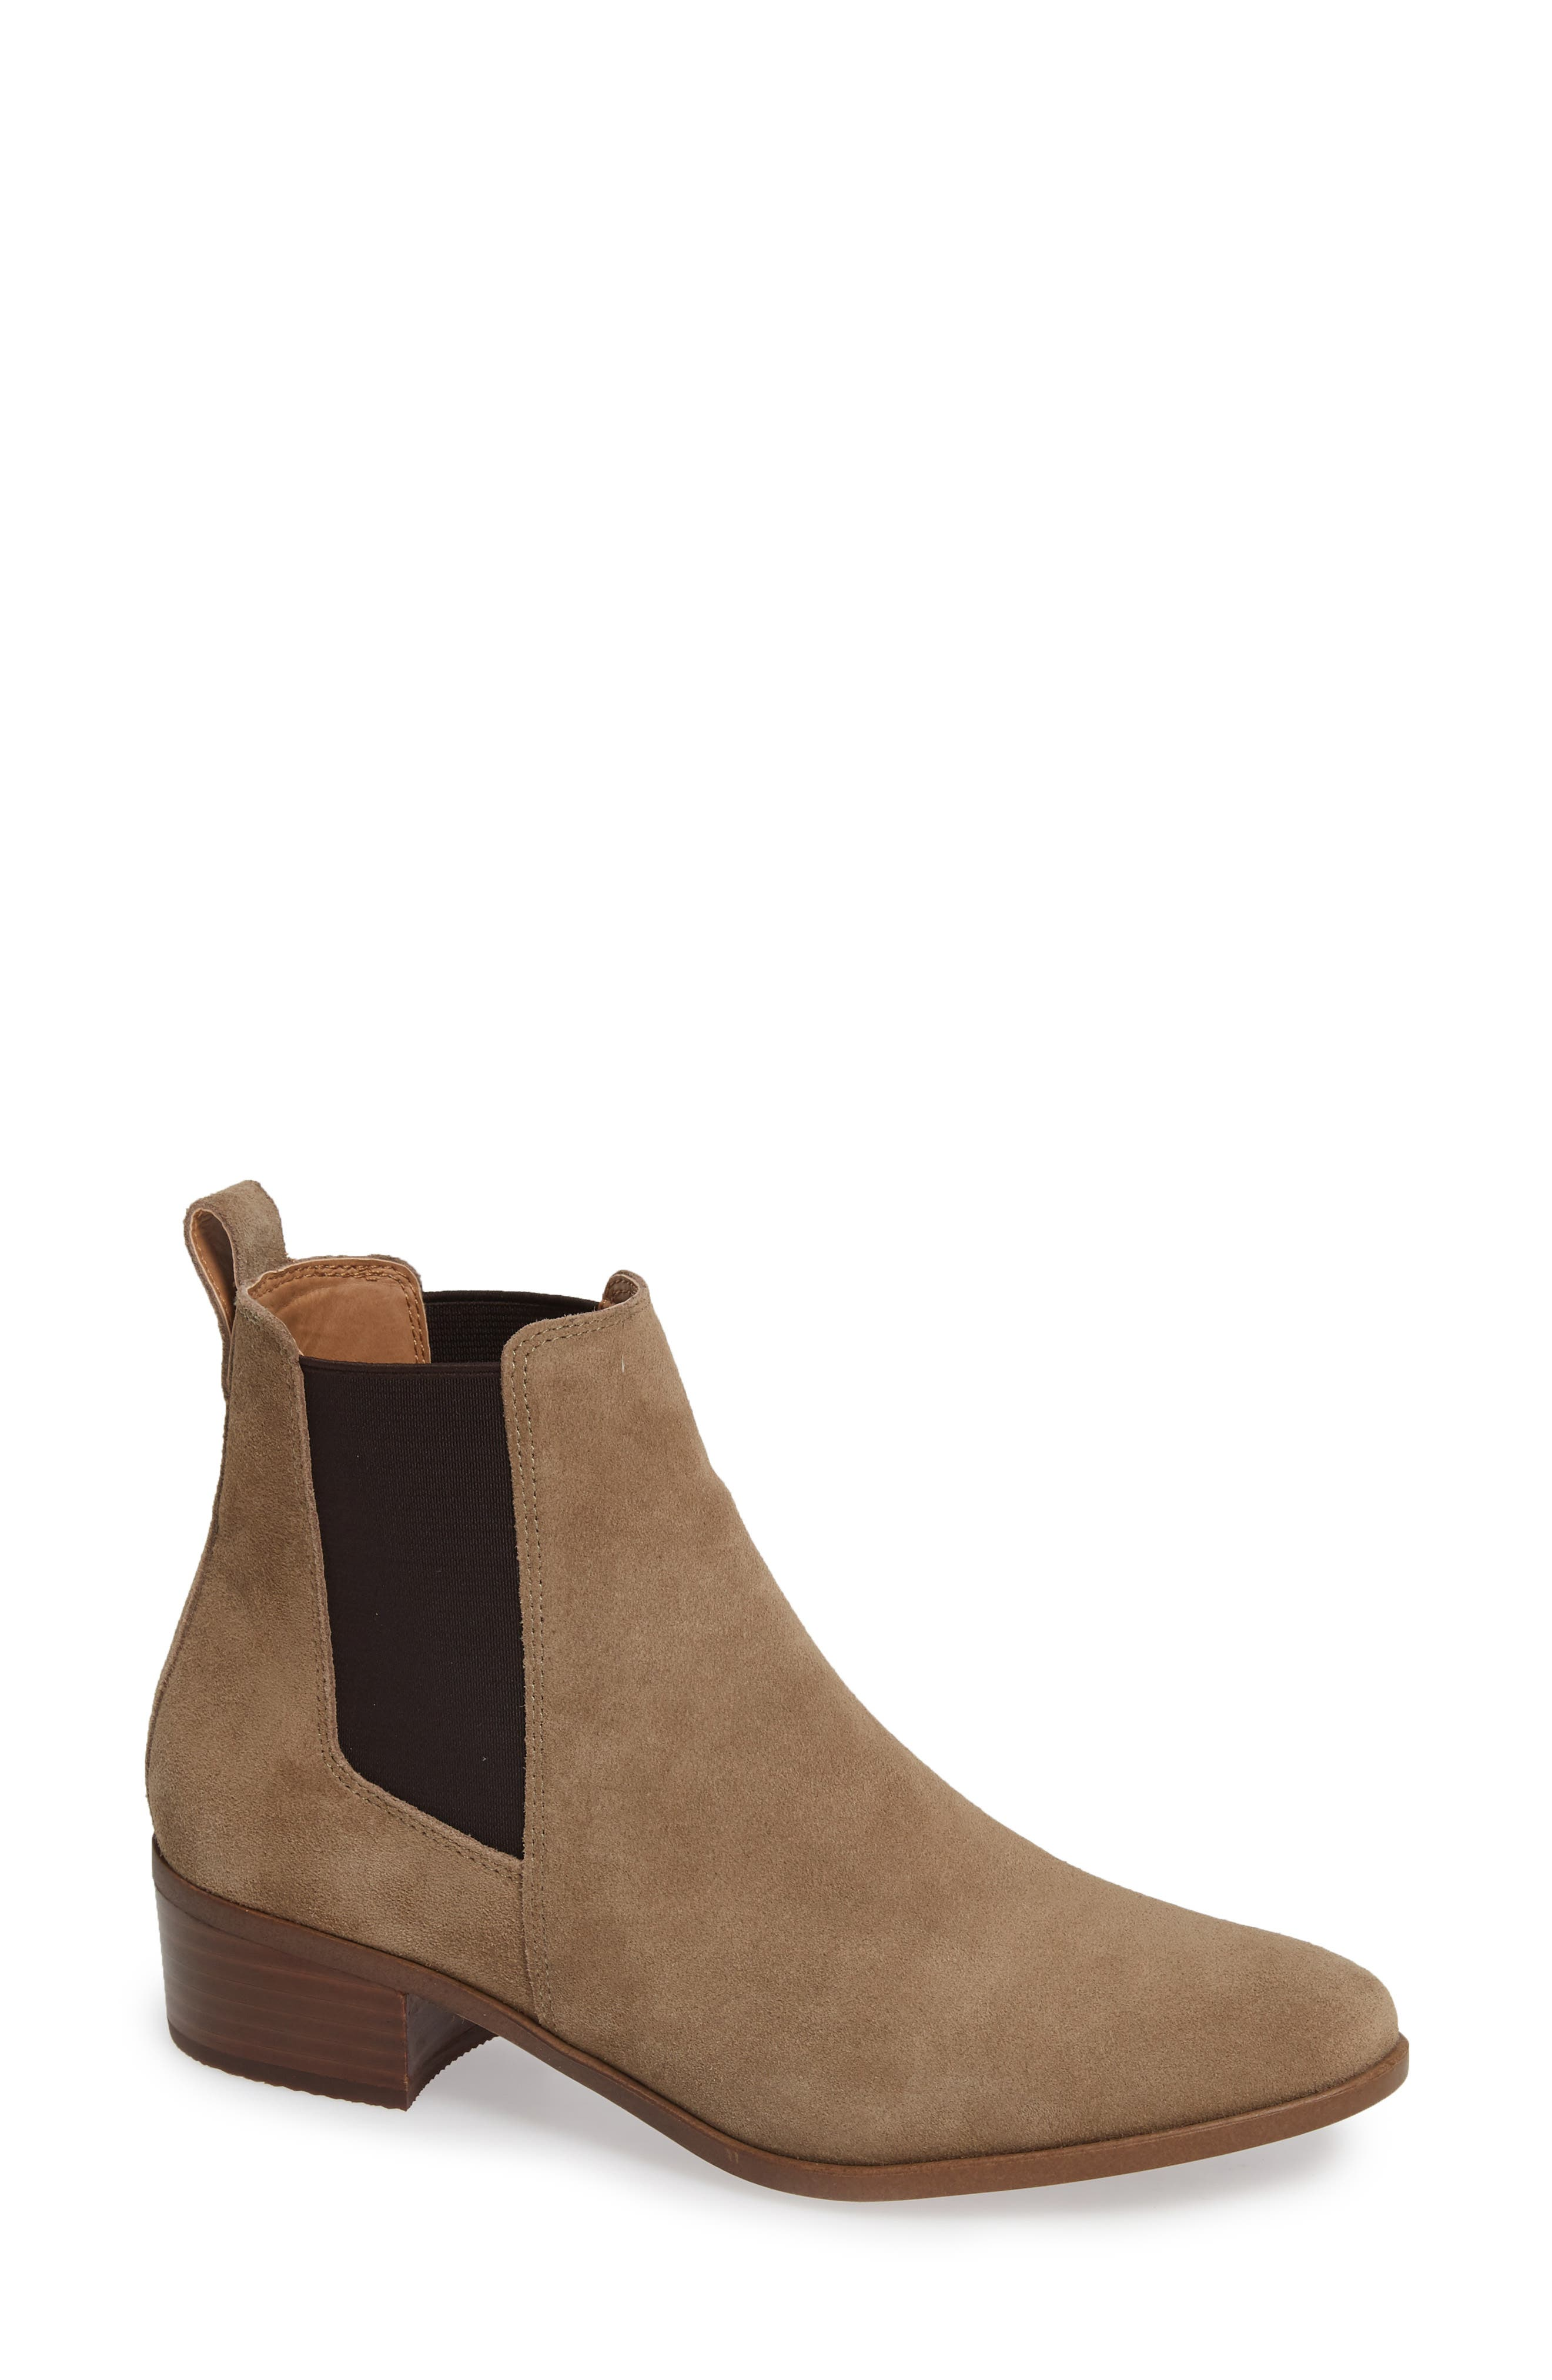 25c627fe3ce Steve Madden Boots for Women